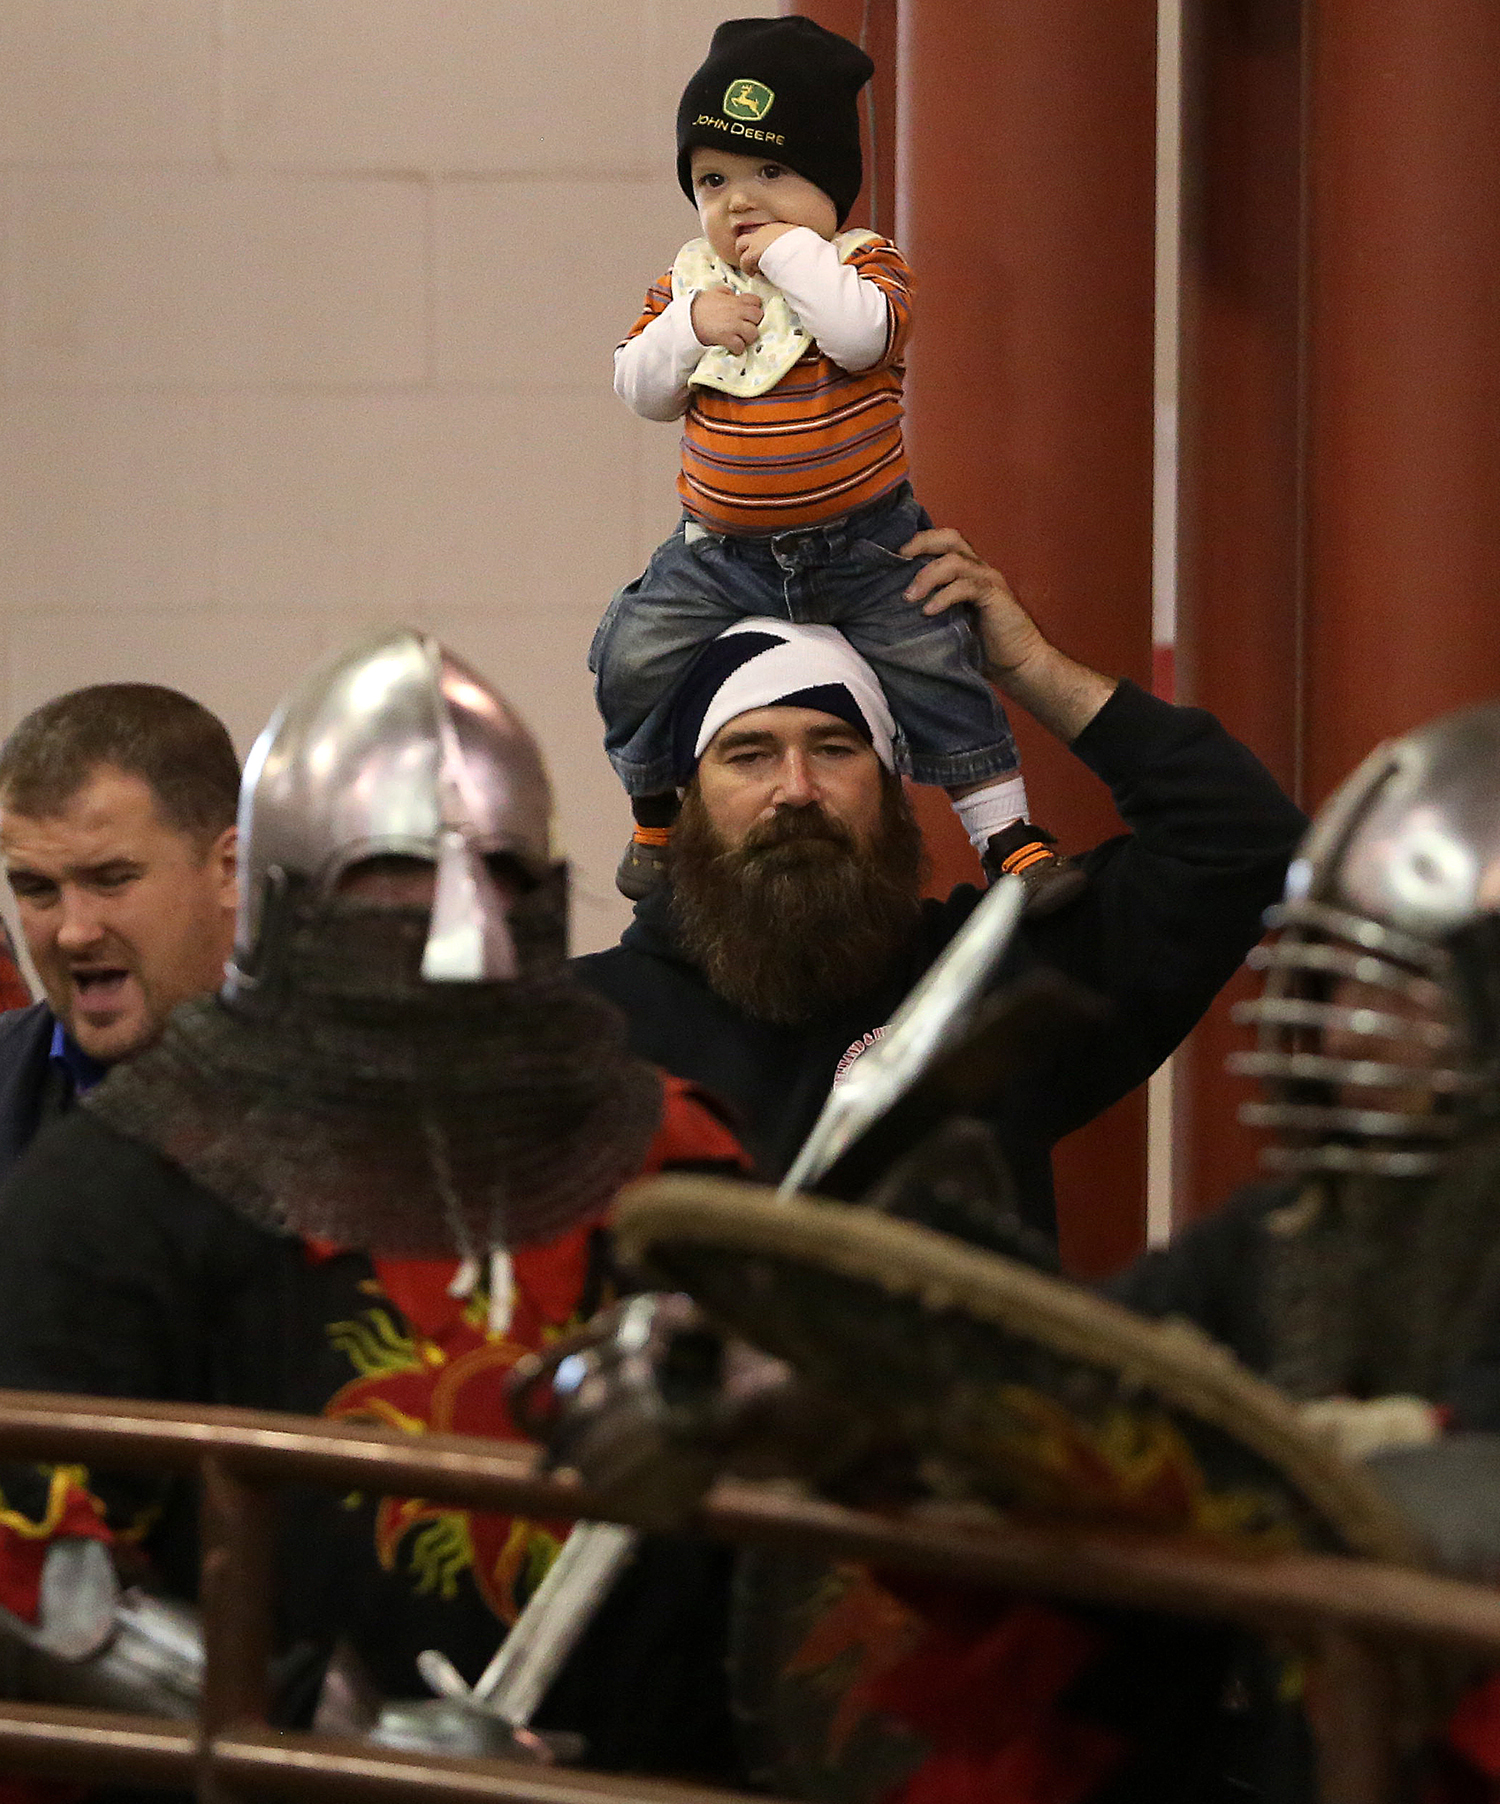 New Berlin resident and Society for Creative Anachronism member Jim Crosier watched the action, along with his grandson Deklan Crosier, outside of the fight ring. The Medieval battle competition Battle of the Nations International Tournament of Chivalry took place at the Livestock Center on the Illinois State Fairgrounds in Springfield on Saturday, Oct. 18, 2014. Armored swordfighters competed in the full contact sport individually and as teams from around the world for medals.  David Spencer/The State Journal-Register